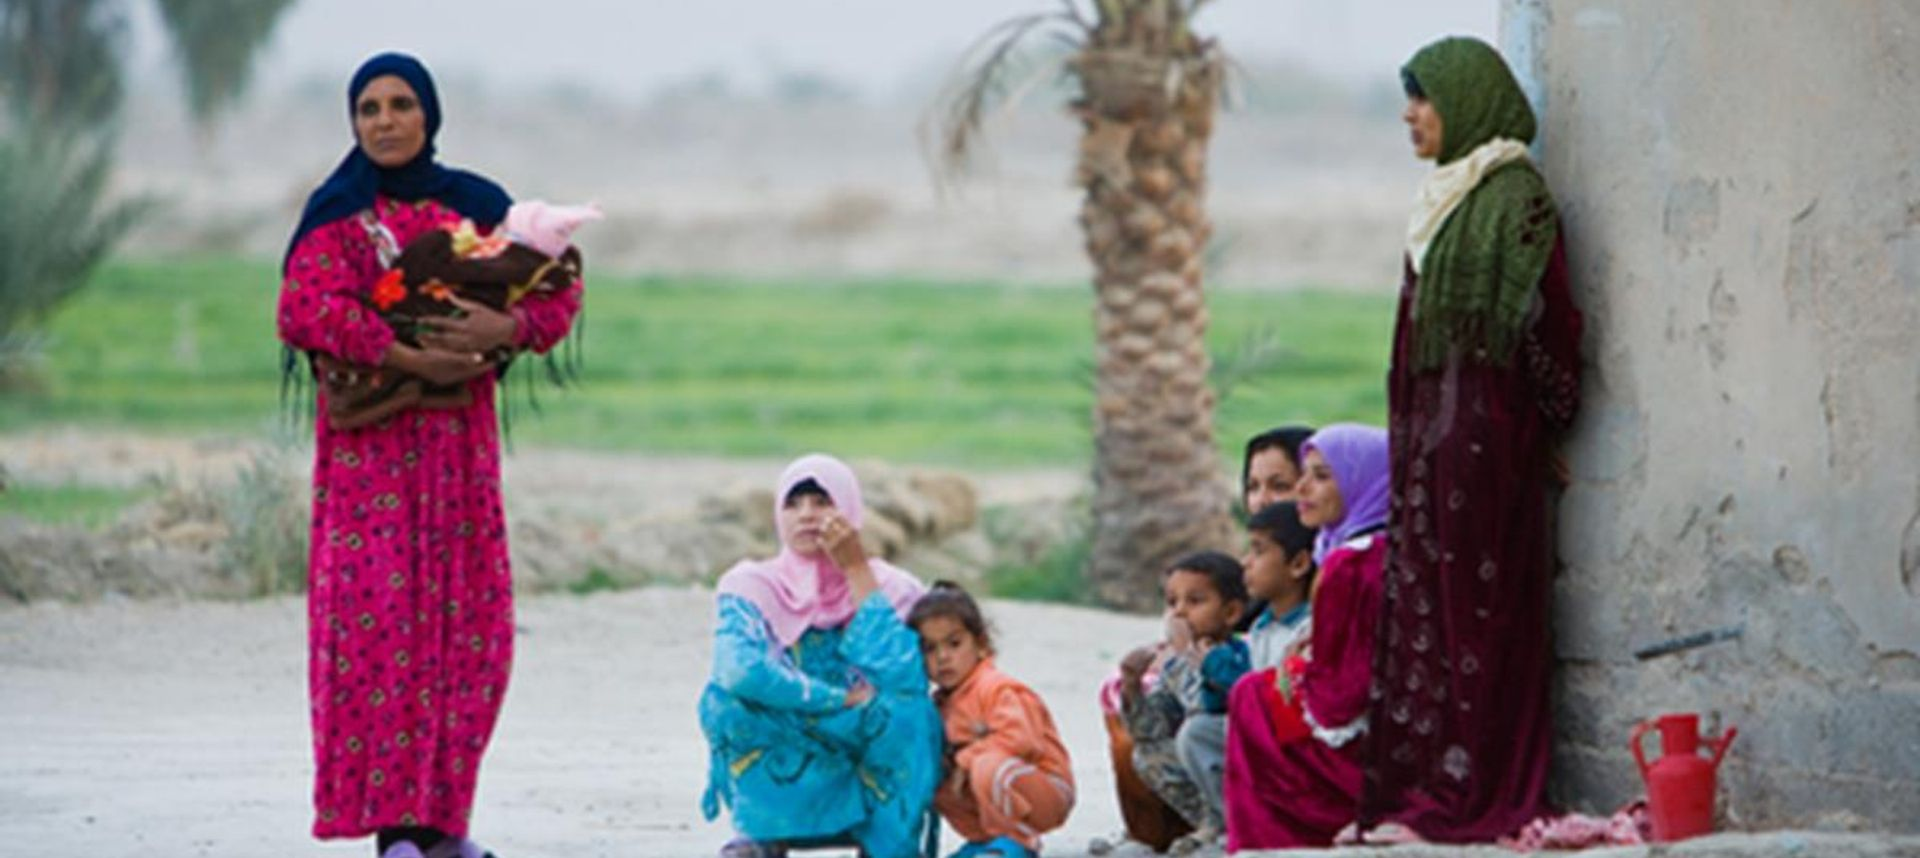 Iraq women with children on the street(dreamstime.com)